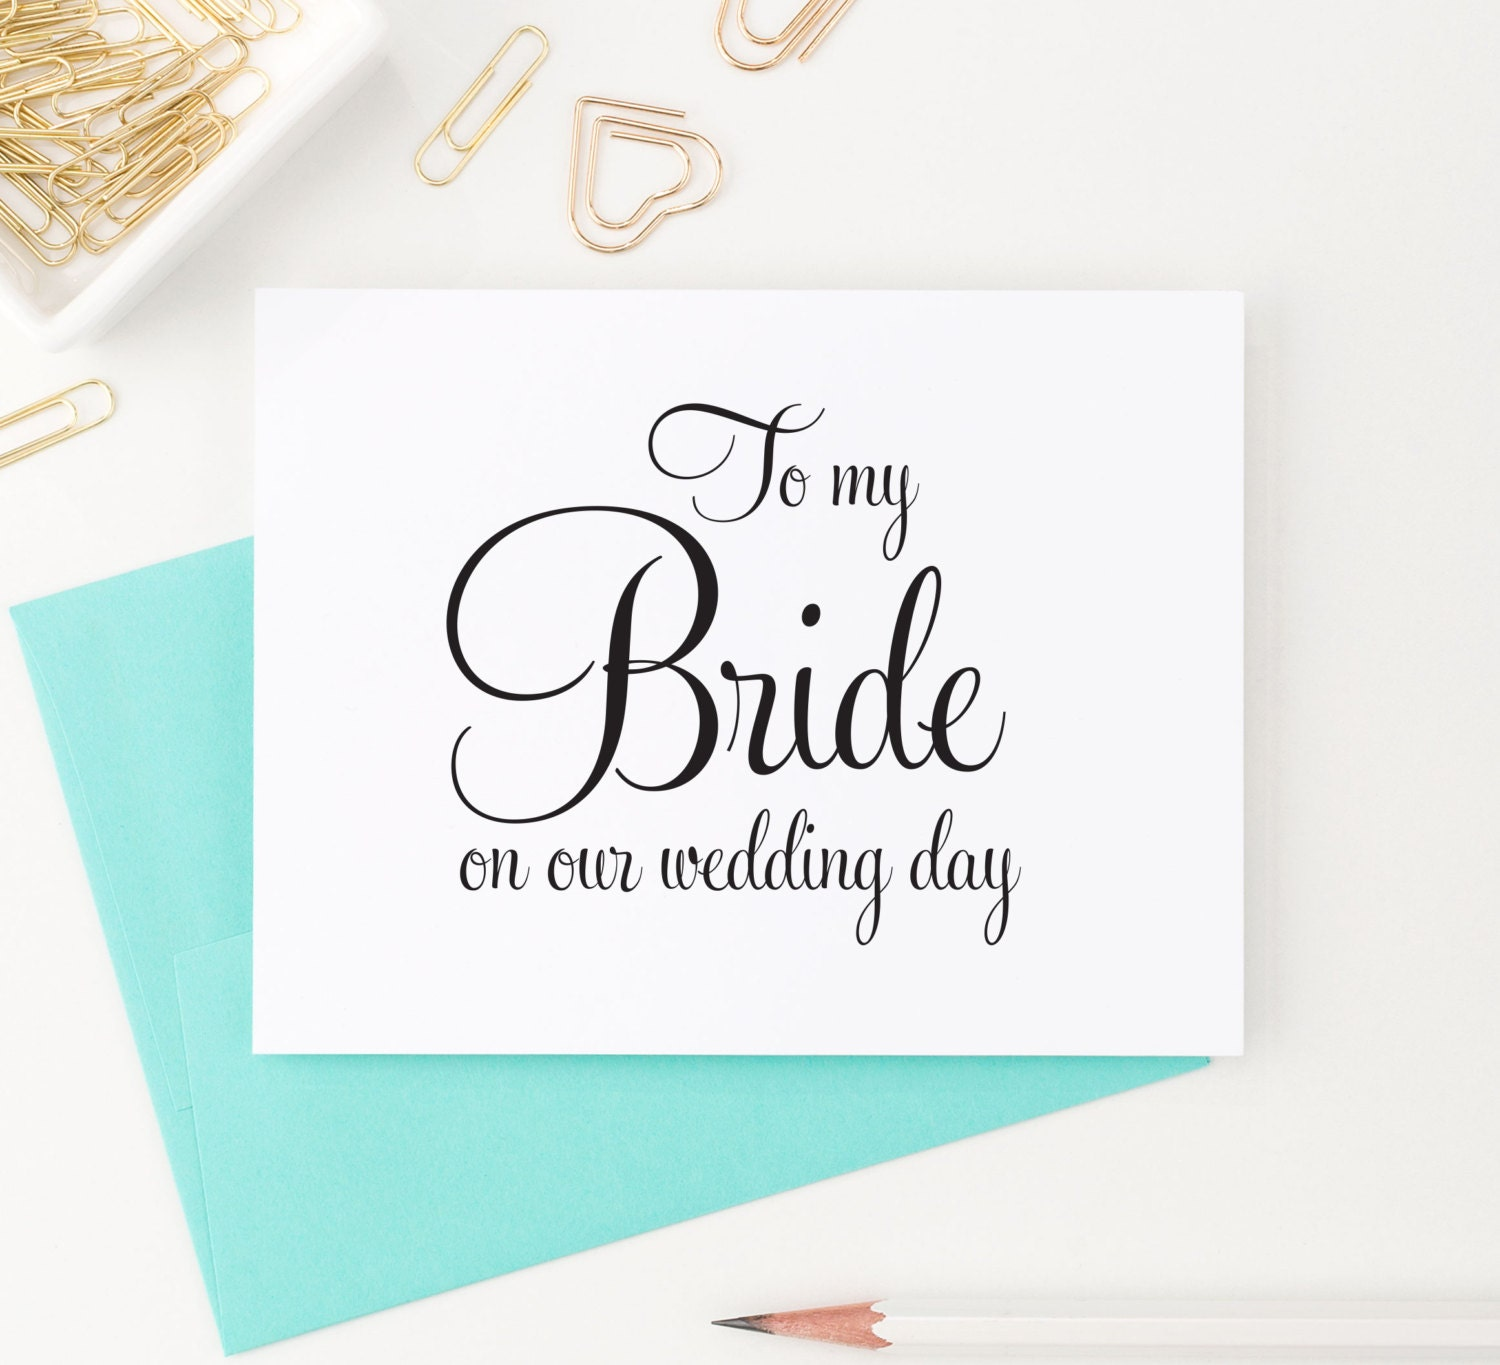 Wedding Day Gifts For My Bride : To my Bride on our wedding day Card To my Bride Card Wedding